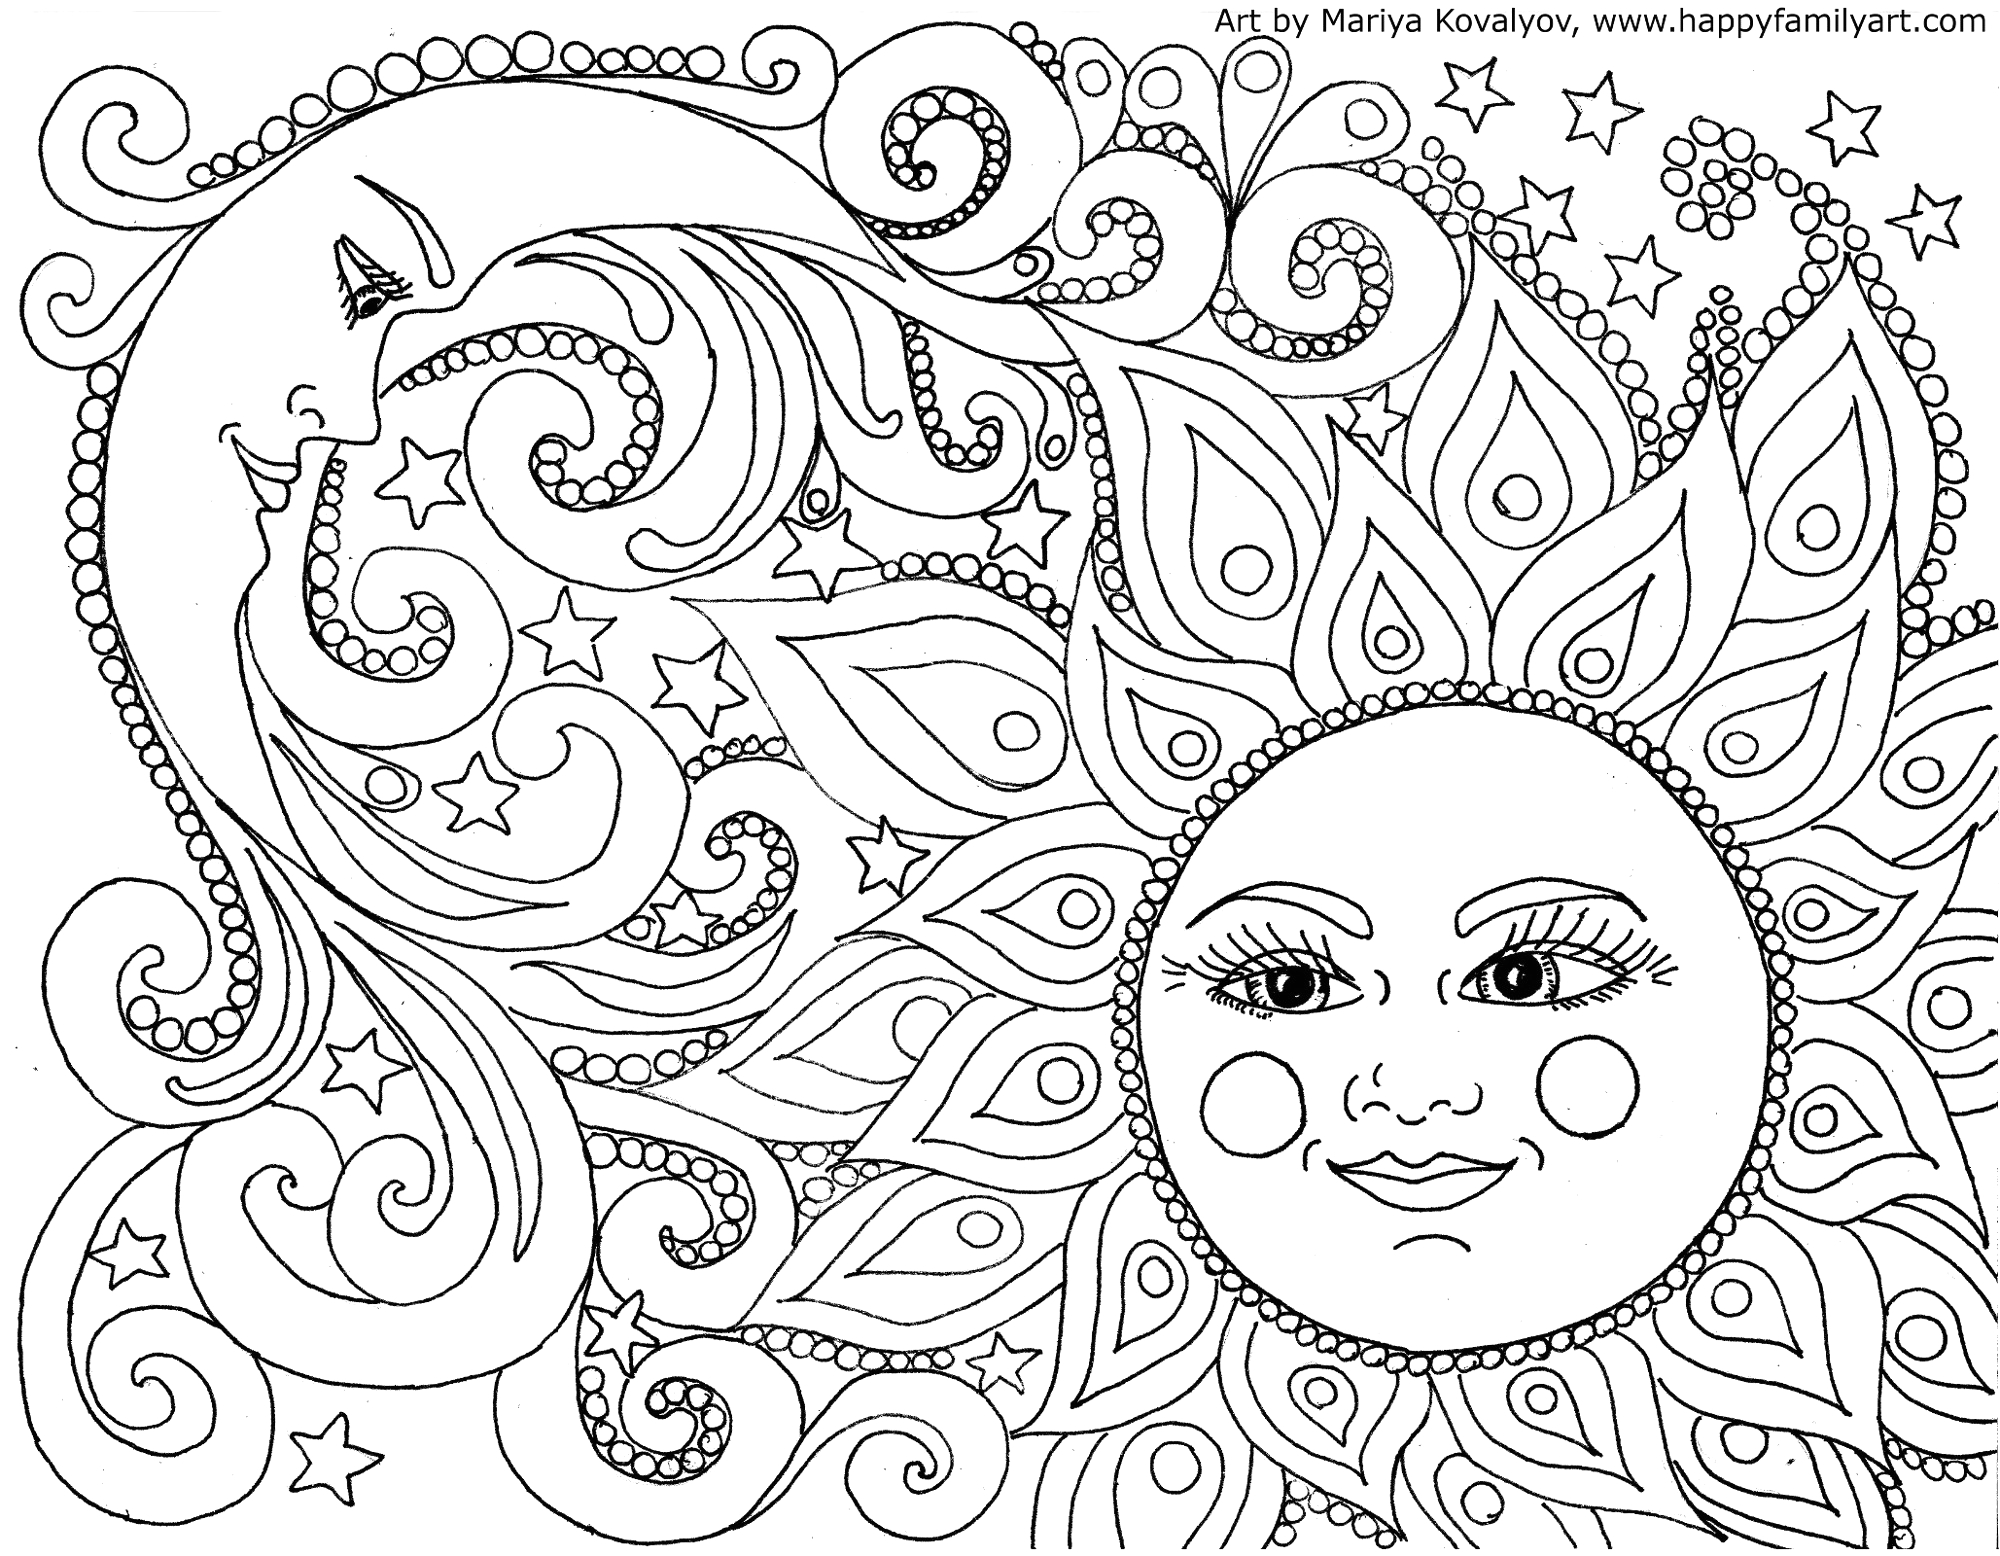 Free Printable Sun and Moon Coloring Pages Happy Family Art original and Fun Coloring Pages